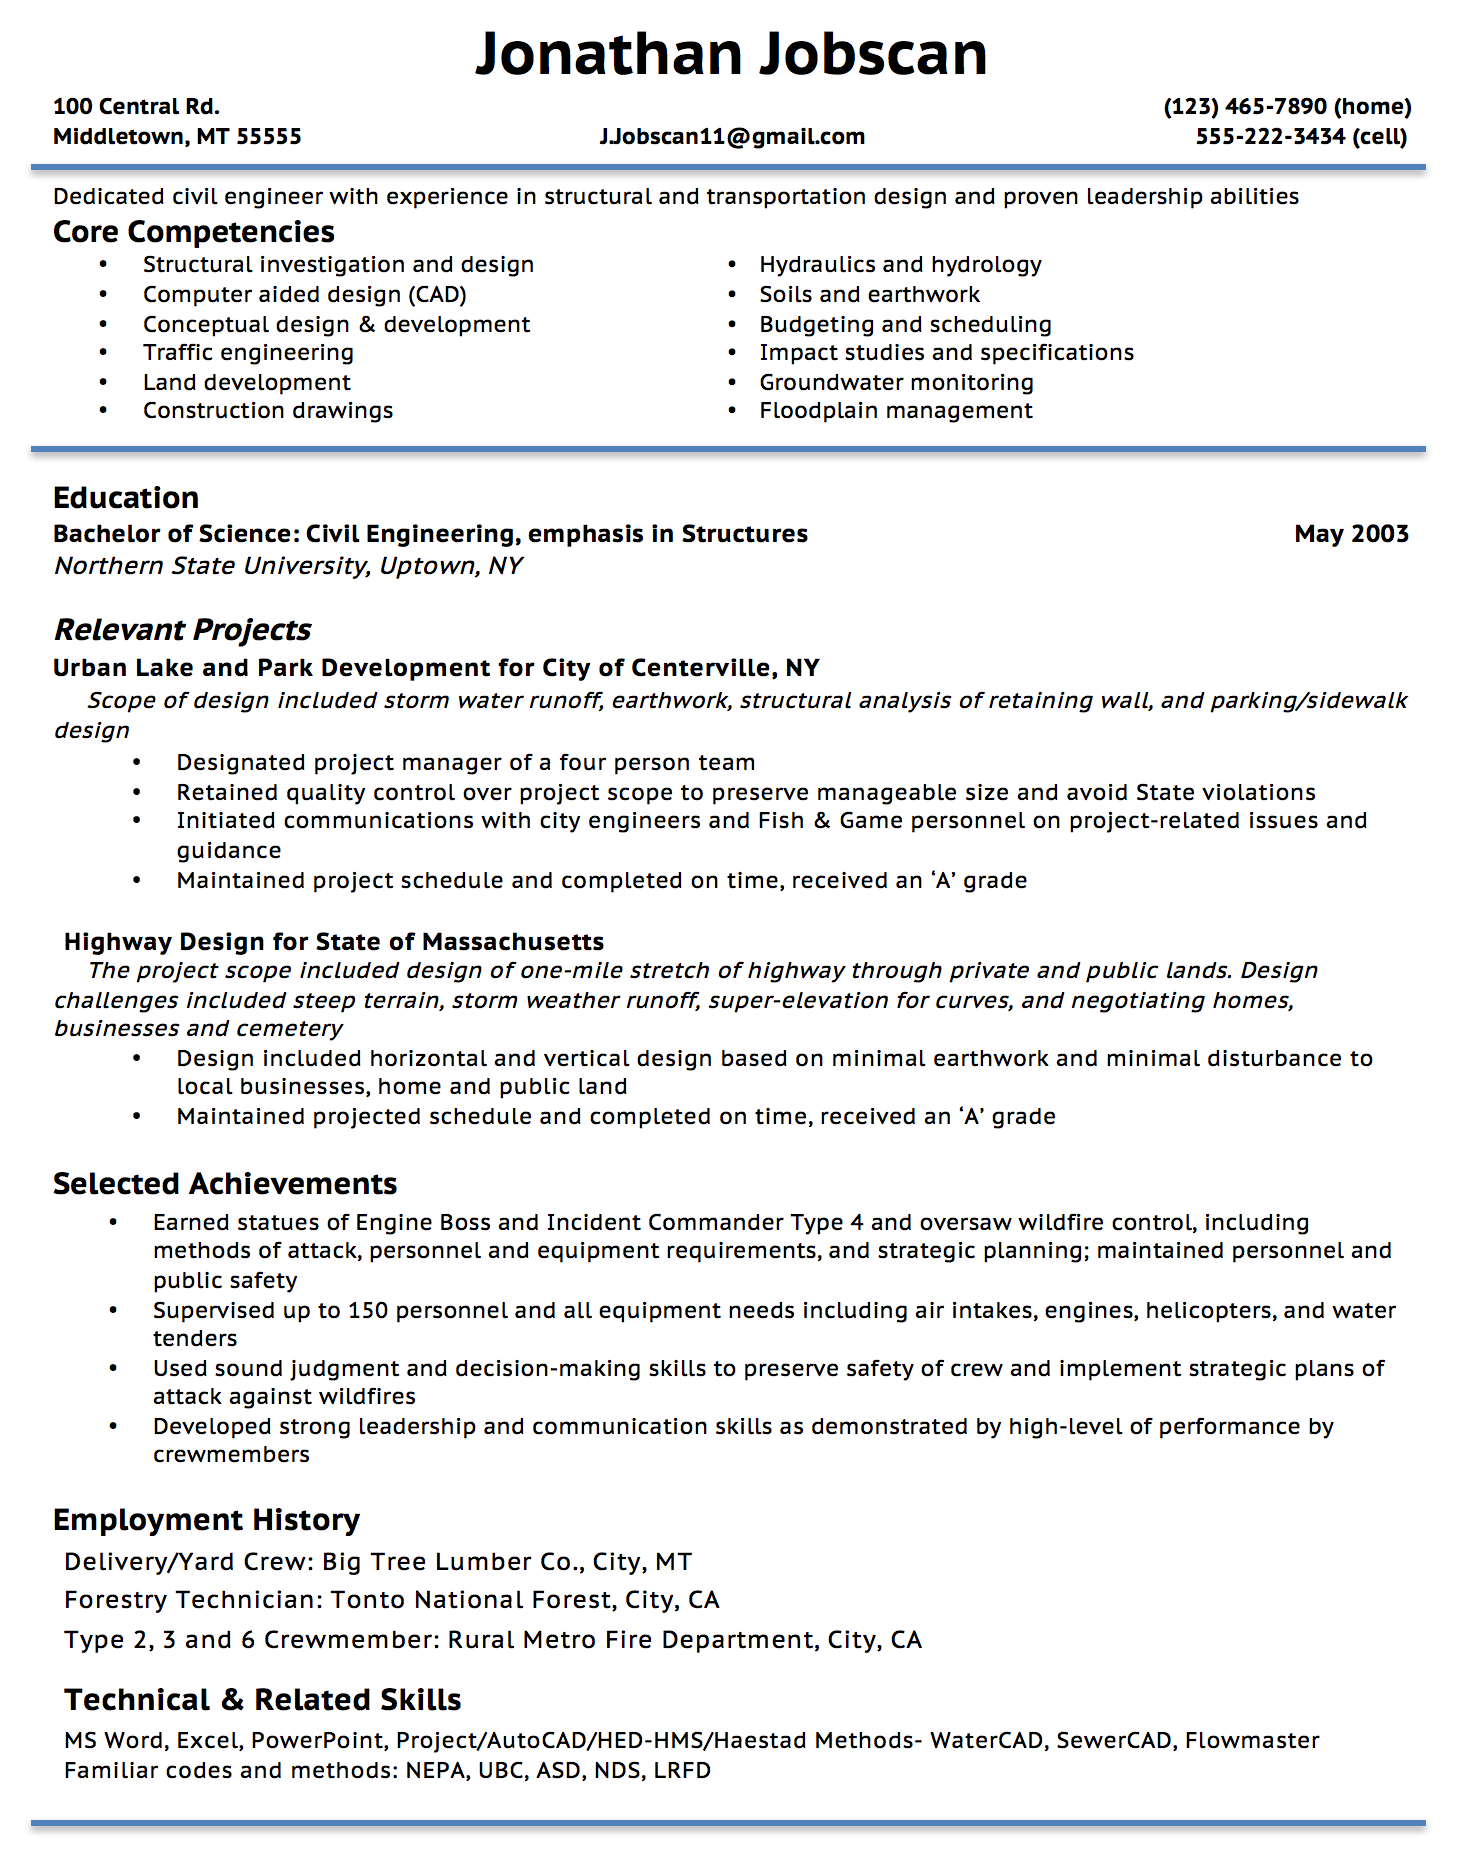 Opposenewapstandardsus  Personable Resume Writing Guide  Jobscan With Great Example Of A Functional Resume Format With Archaic Key Qualifications In A Resume Also I Need A Resume Now In Addition Resume Writing For Dummies And Powerful Resume As Well As Program Specialist Resume Additionally Verbs To Use In A Resume From Jobscanco With Opposenewapstandardsus  Great Resume Writing Guide  Jobscan With Archaic Example Of A Functional Resume Format And Personable Key Qualifications In A Resume Also I Need A Resume Now In Addition Resume Writing For Dummies From Jobscanco